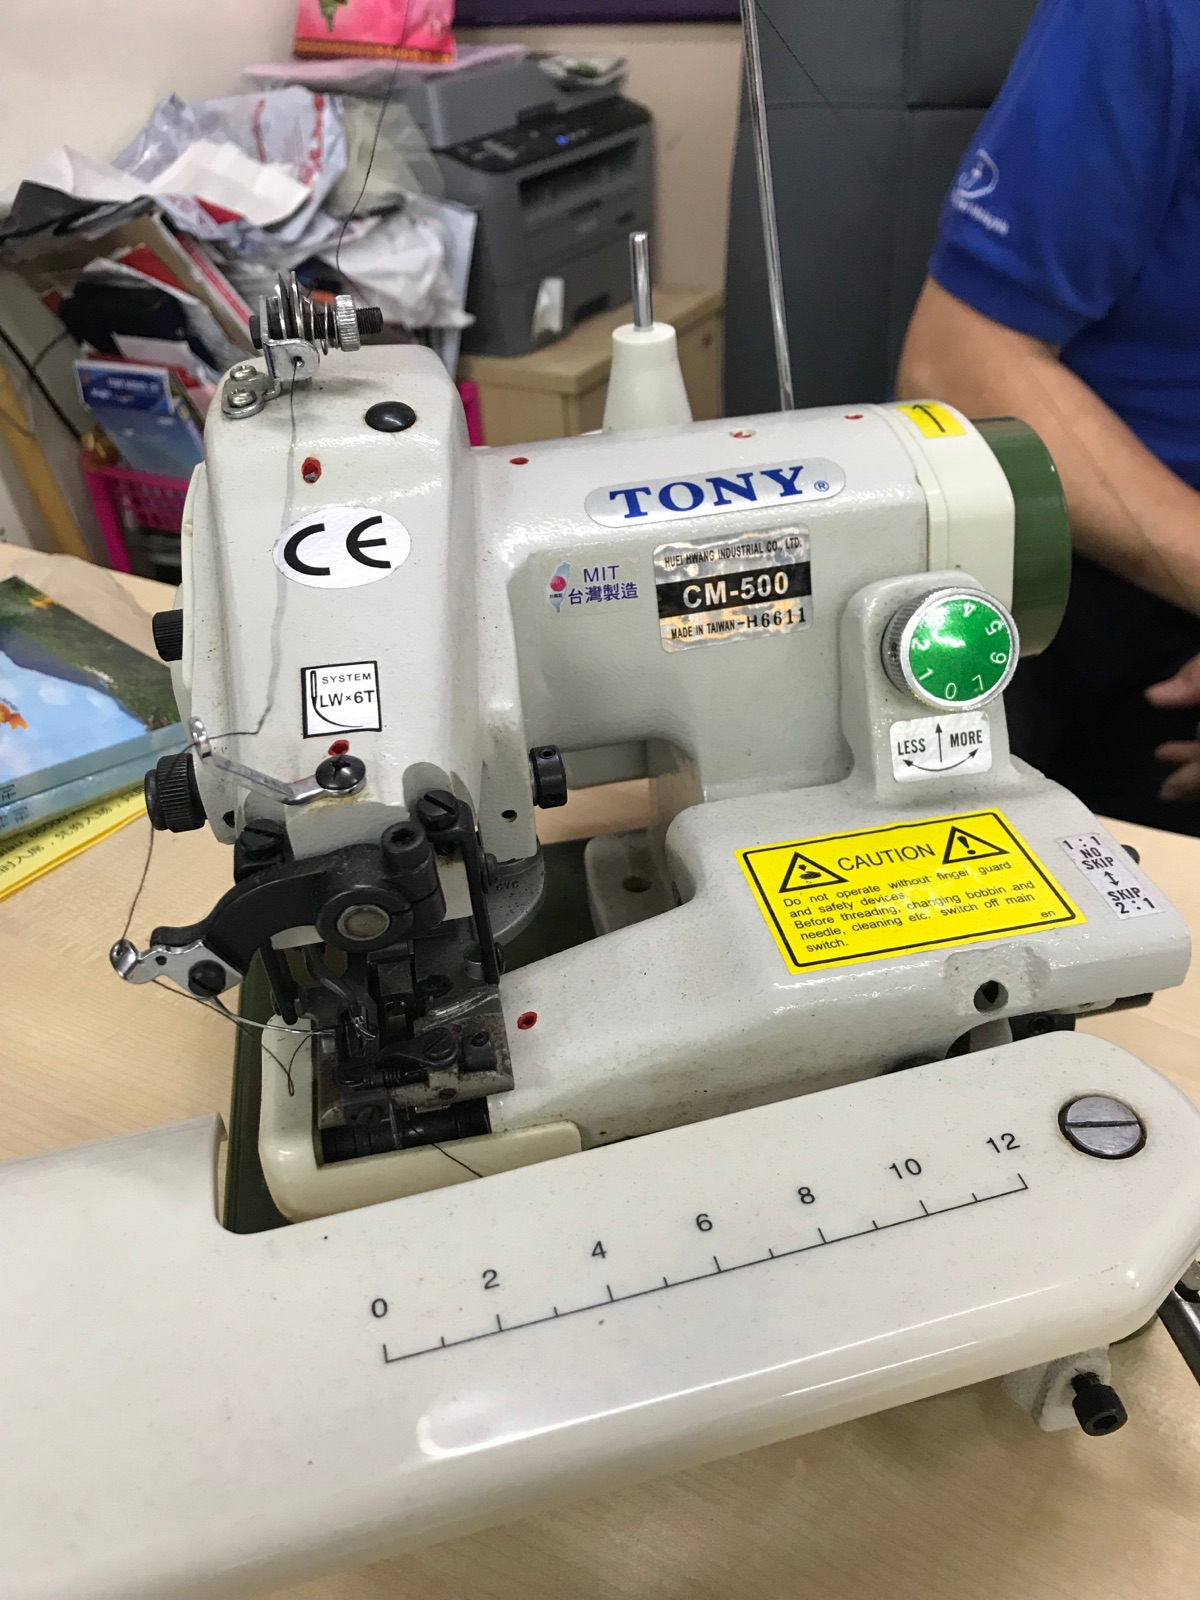 Tony Sewing Machine